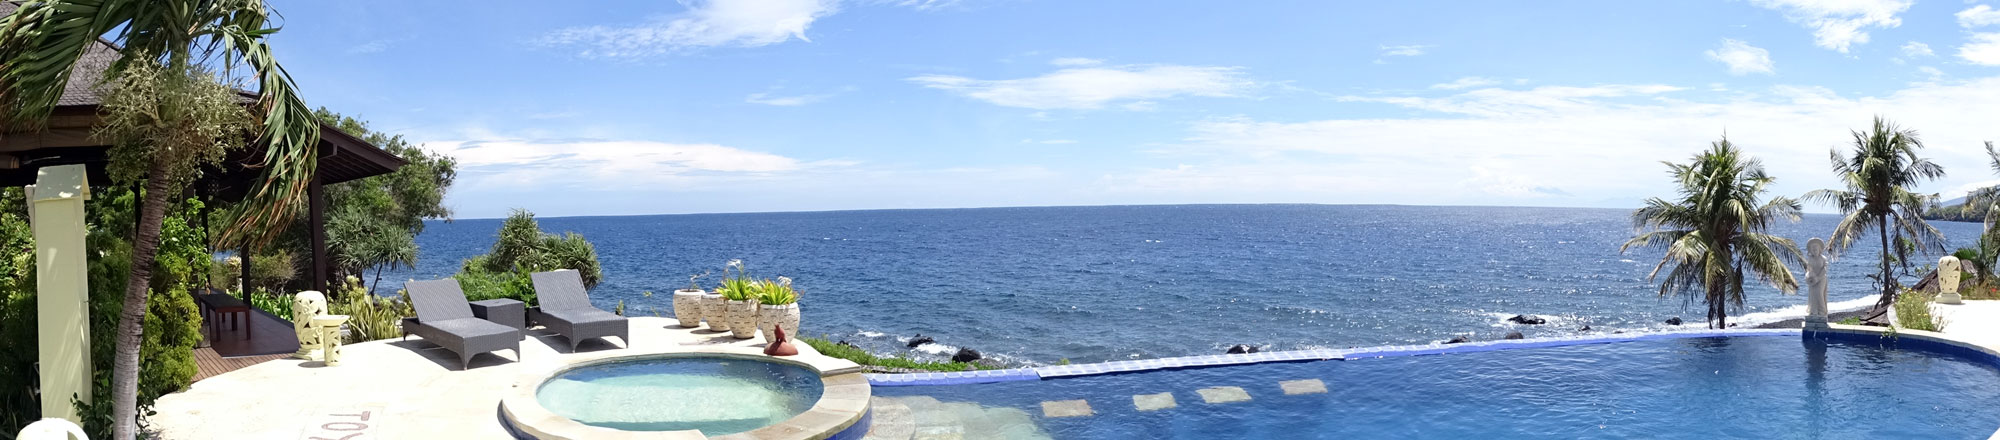 Bali oceanfront hotel resort for sale